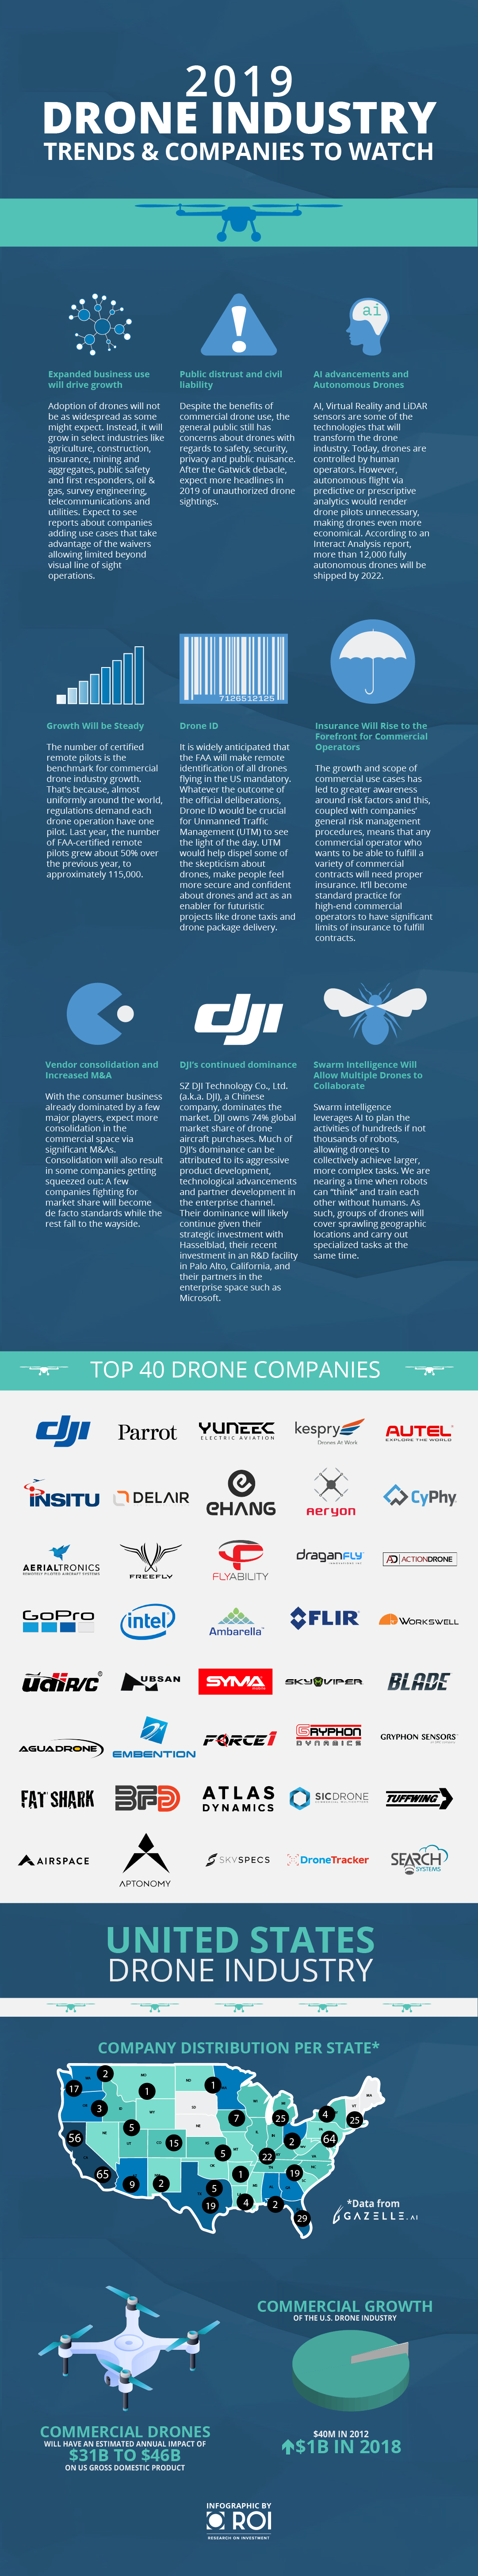 2019 DRONE INDUSTRY TRENDS AND COMPANIES TO WATCH Infographic